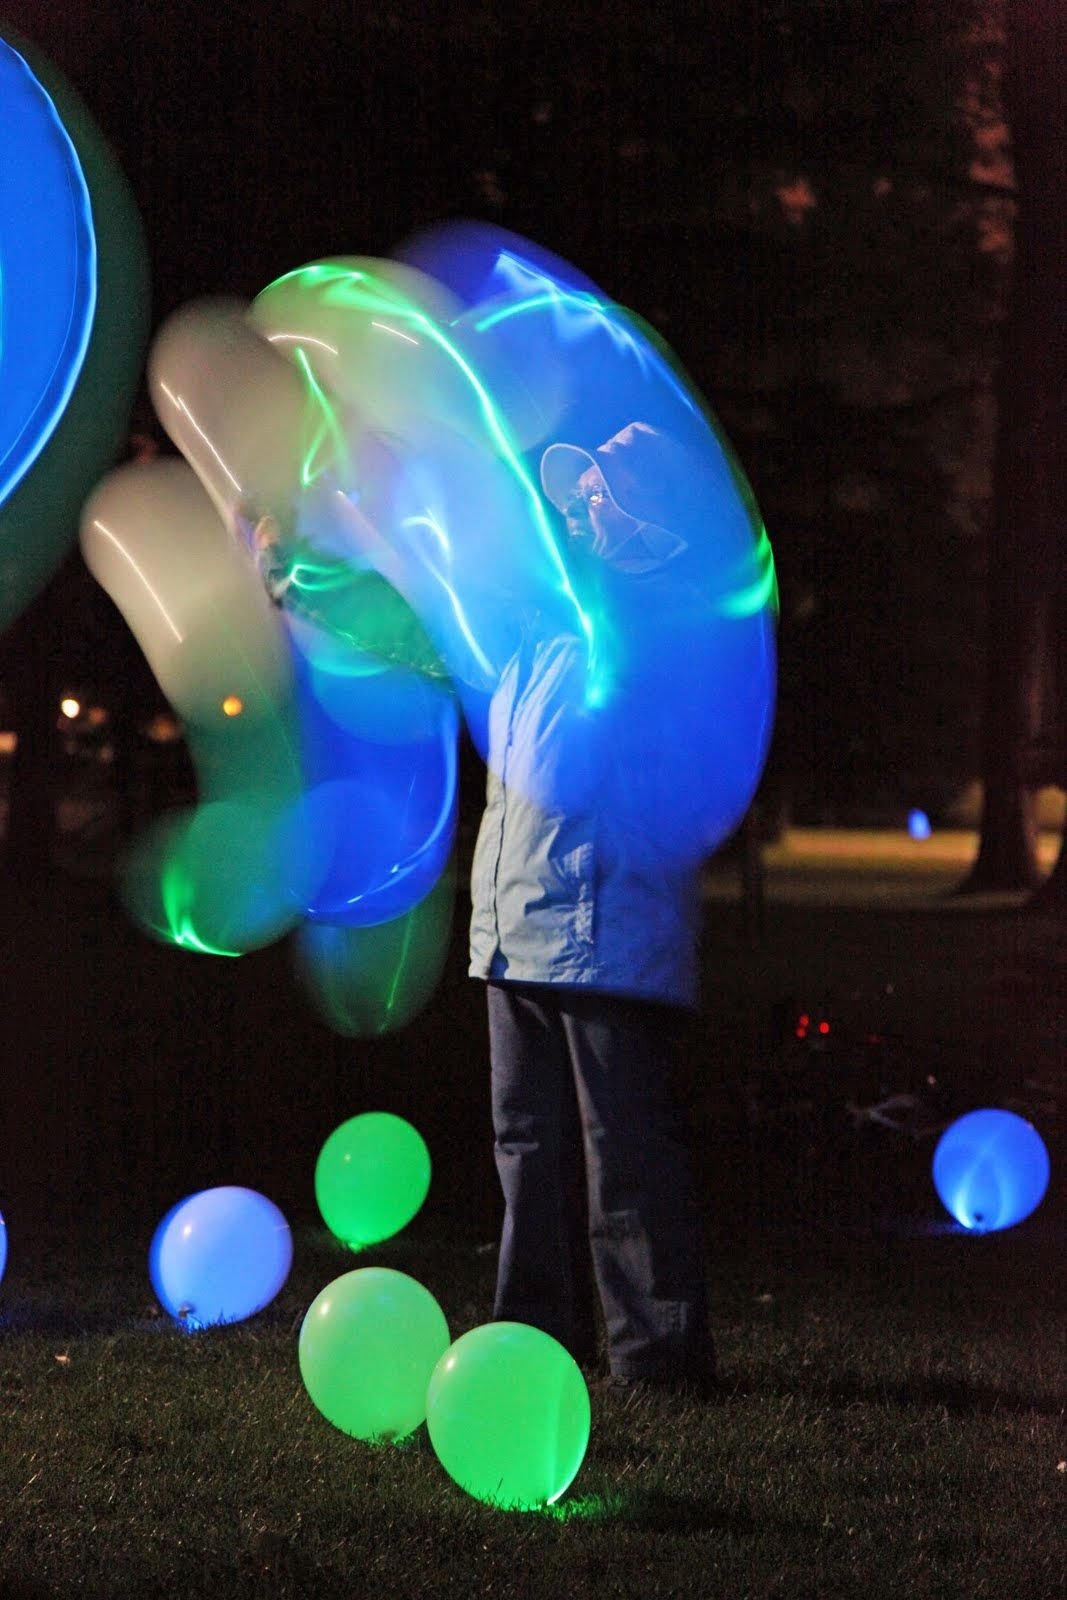 Led Light Fun Led Light Up Balloons Fun Stuff Balloons Stuff